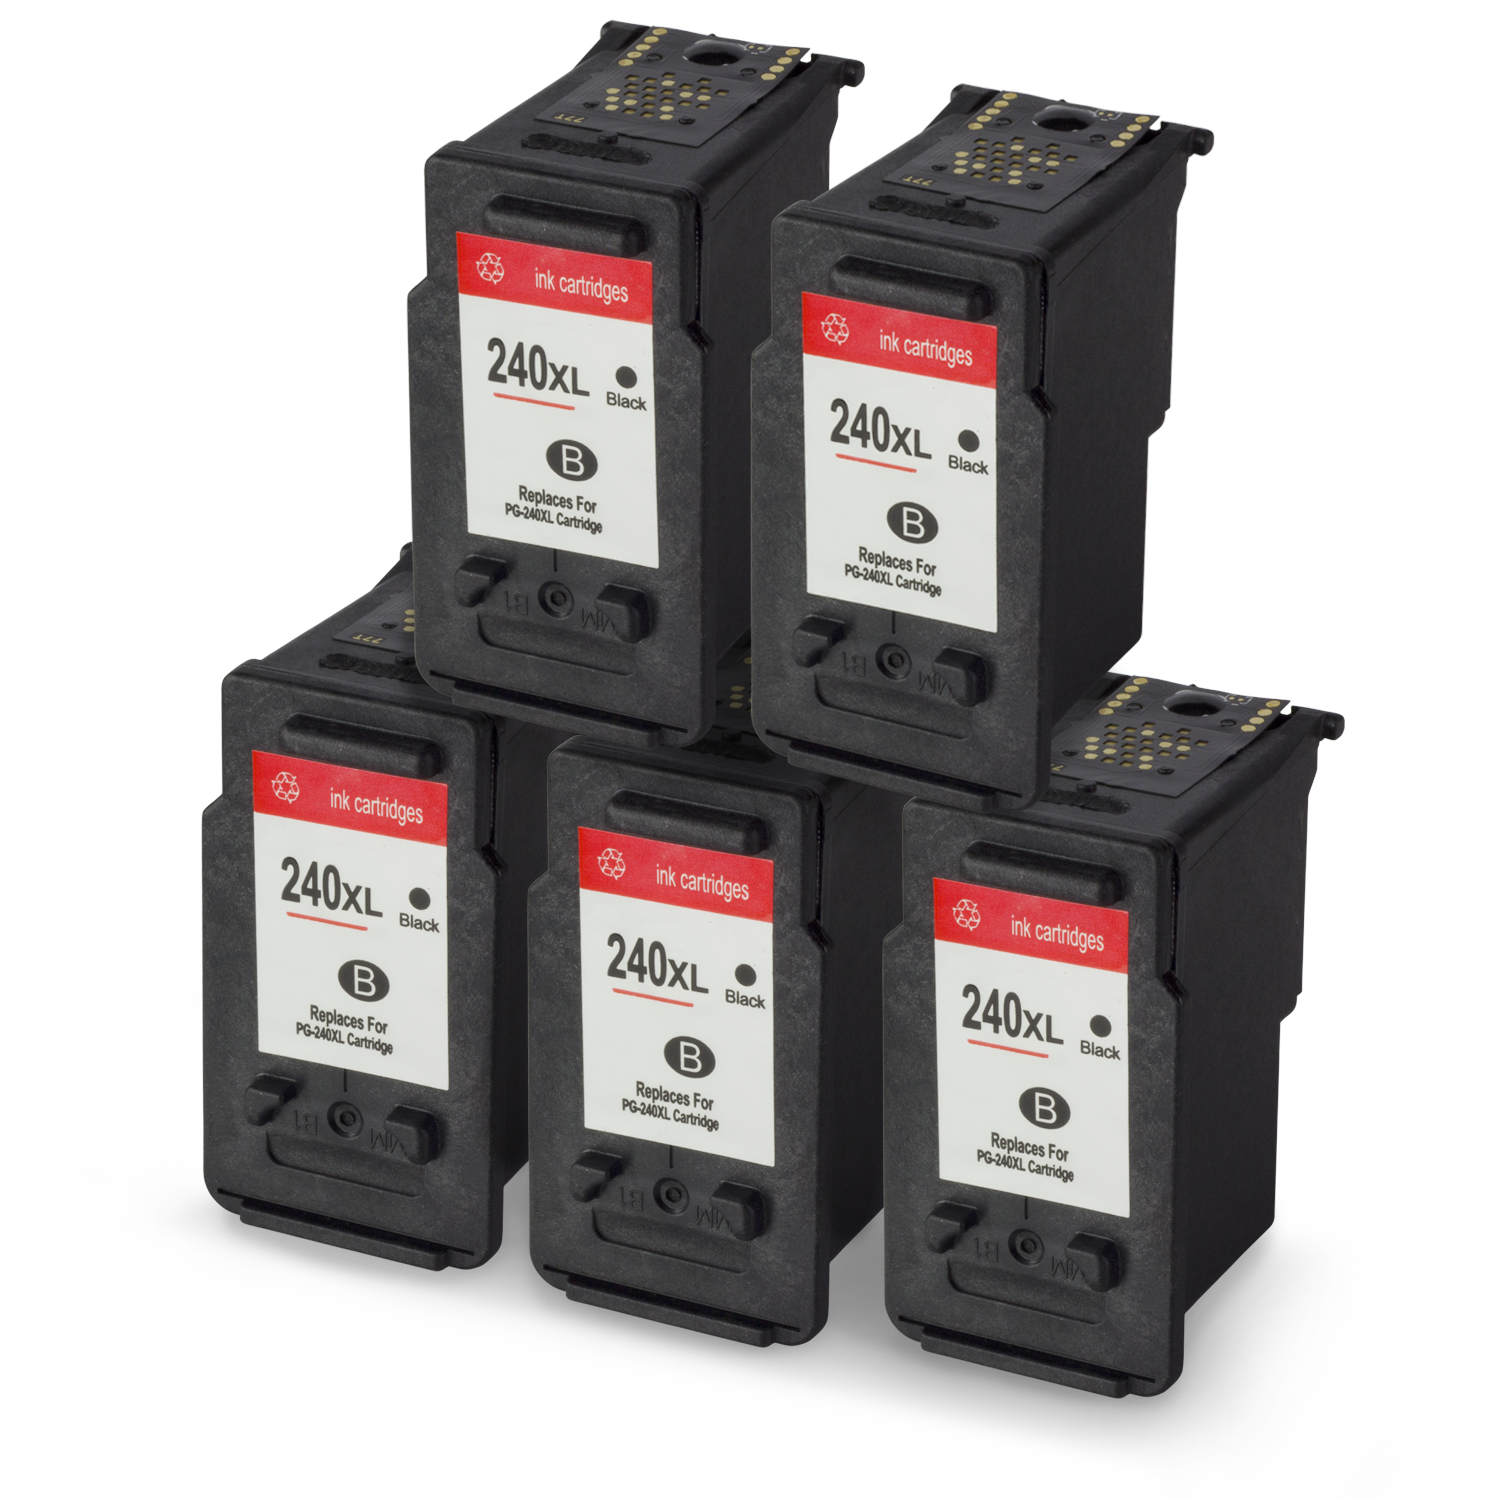 SOJIINK Remanufactured Canon Replacement High Yield Black Ink Cartridge W Auto Level Reset